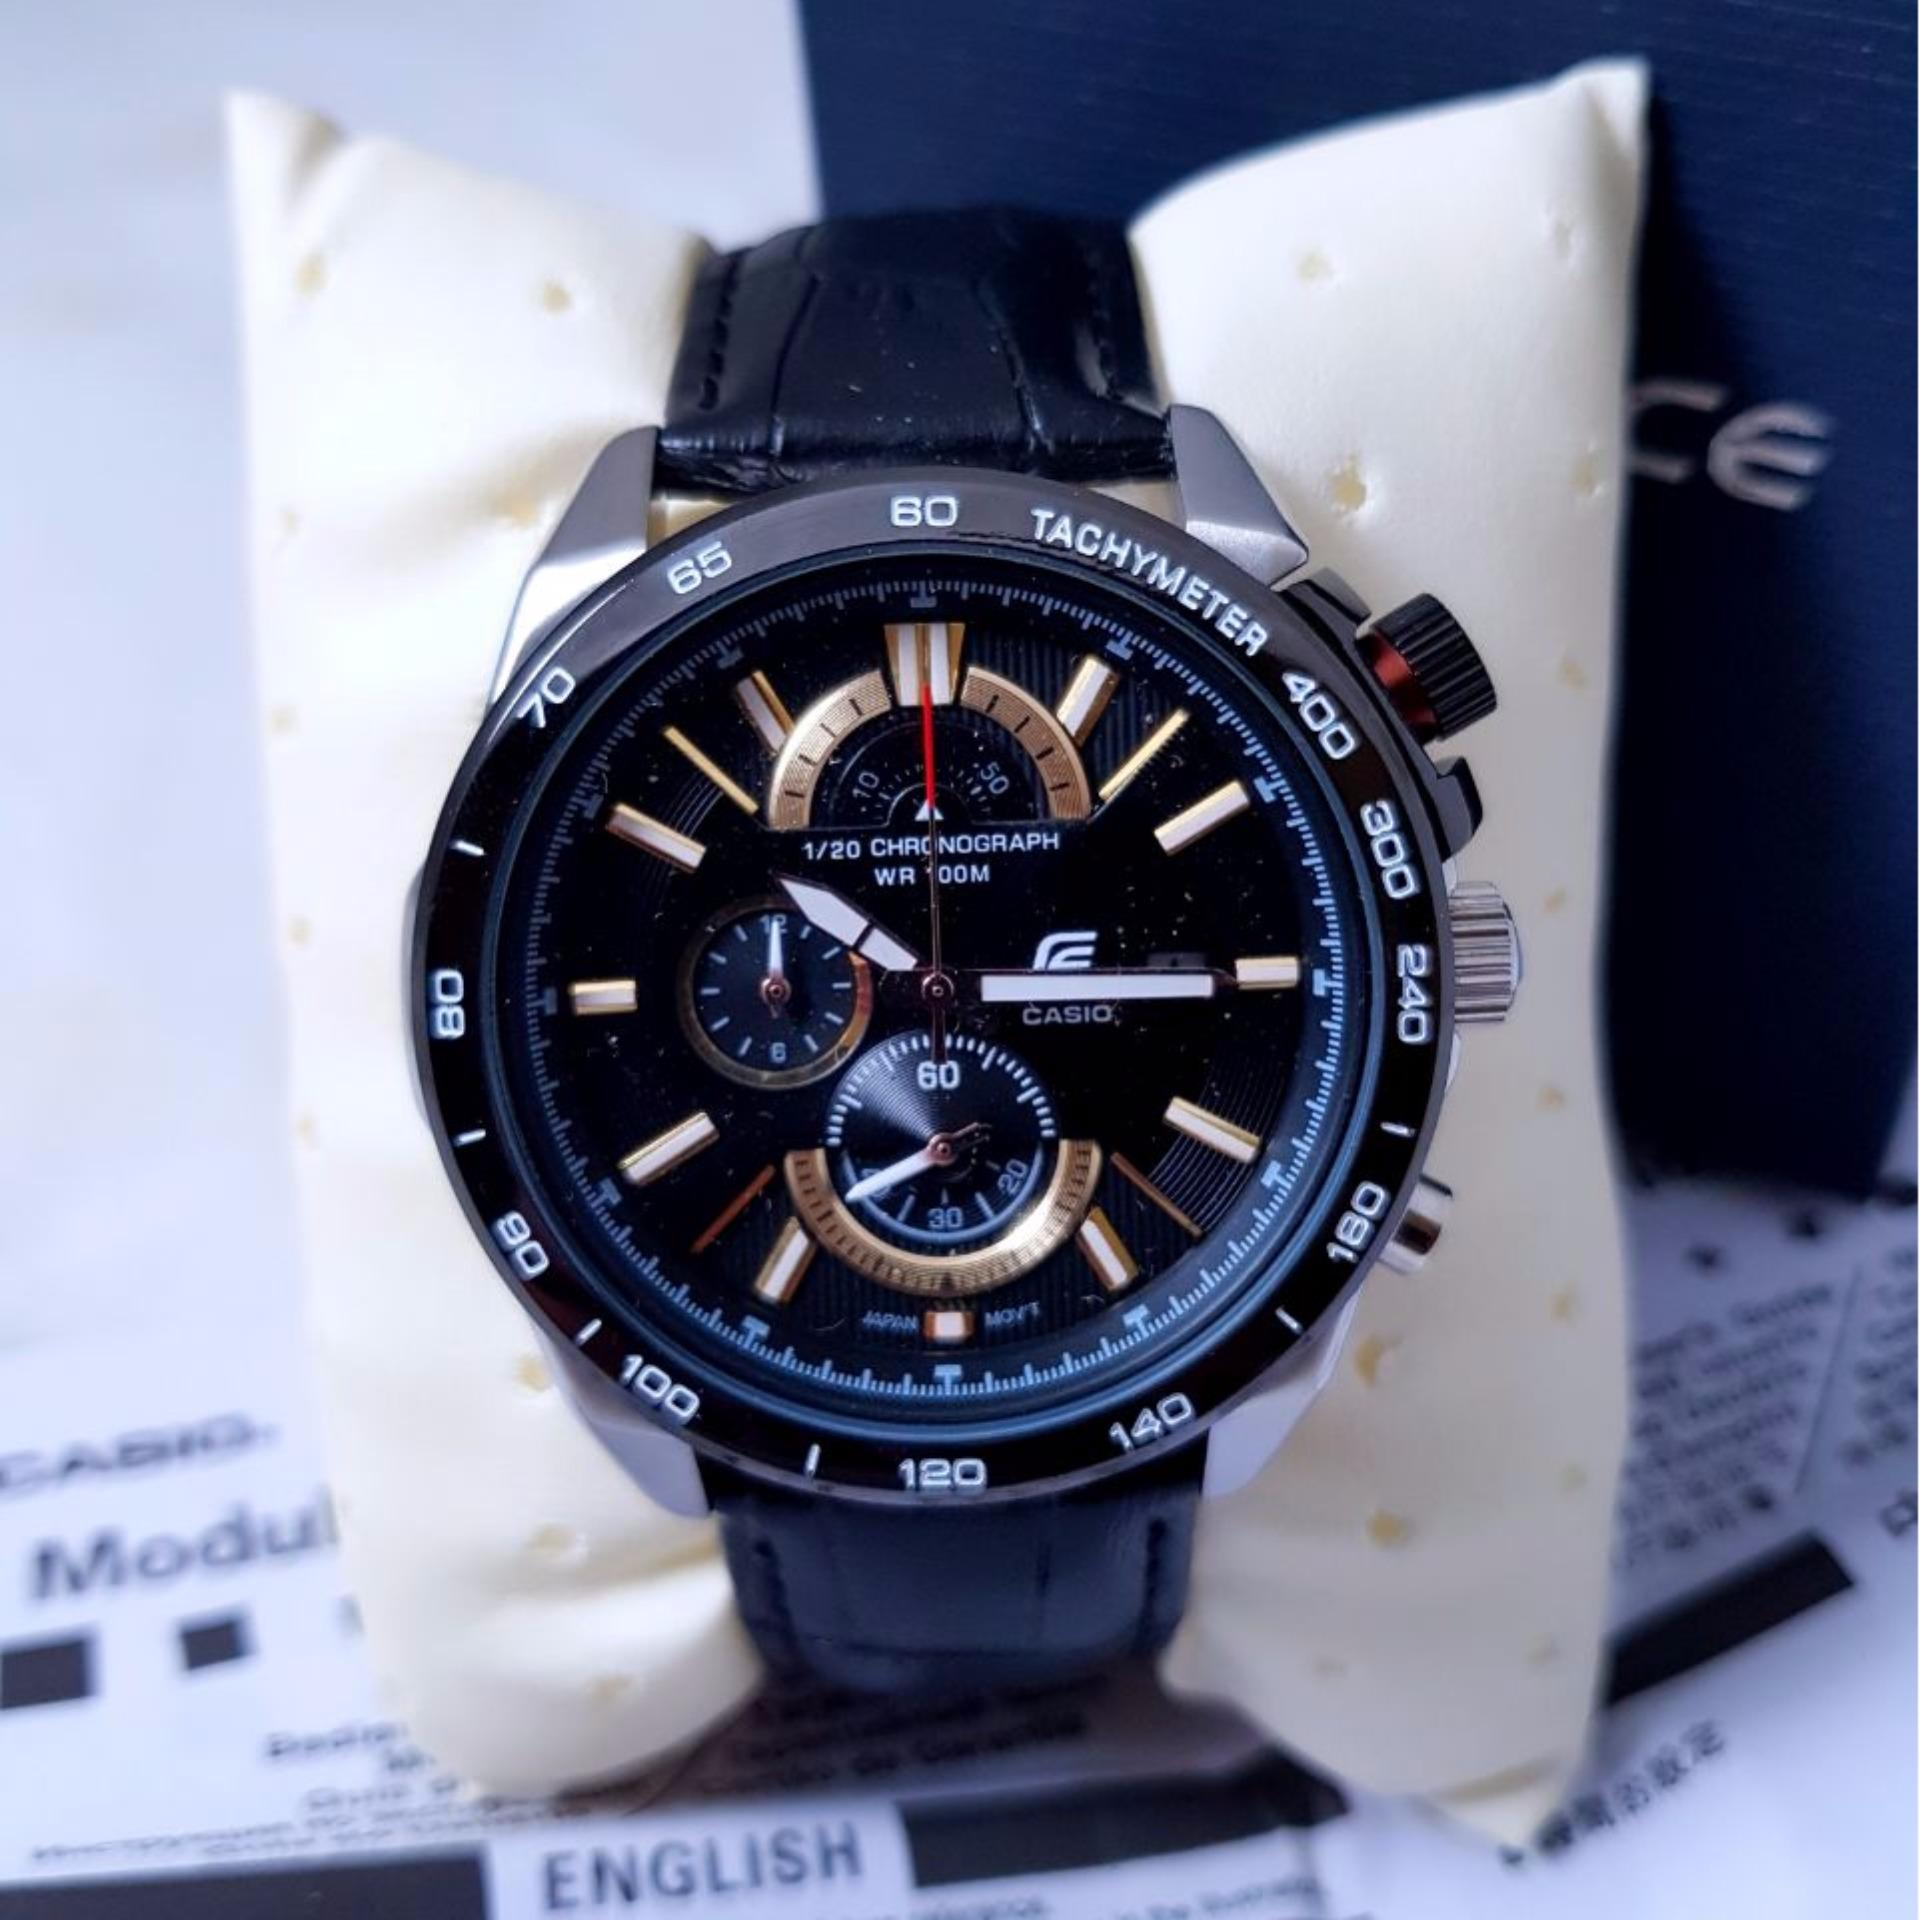 Jual Sa Swiss Army Air Force Kulit Jam Tangan Pria Keren Murah Di Body Black Dial. Source · Jam Tangan Casioo Ediificee EF-520 Leather Black .